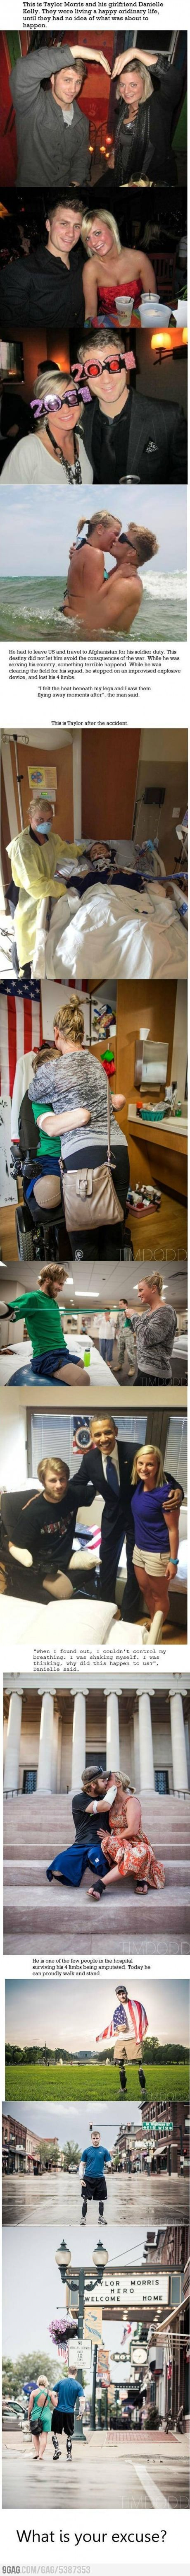 Awesome story about overcoming physical limitations